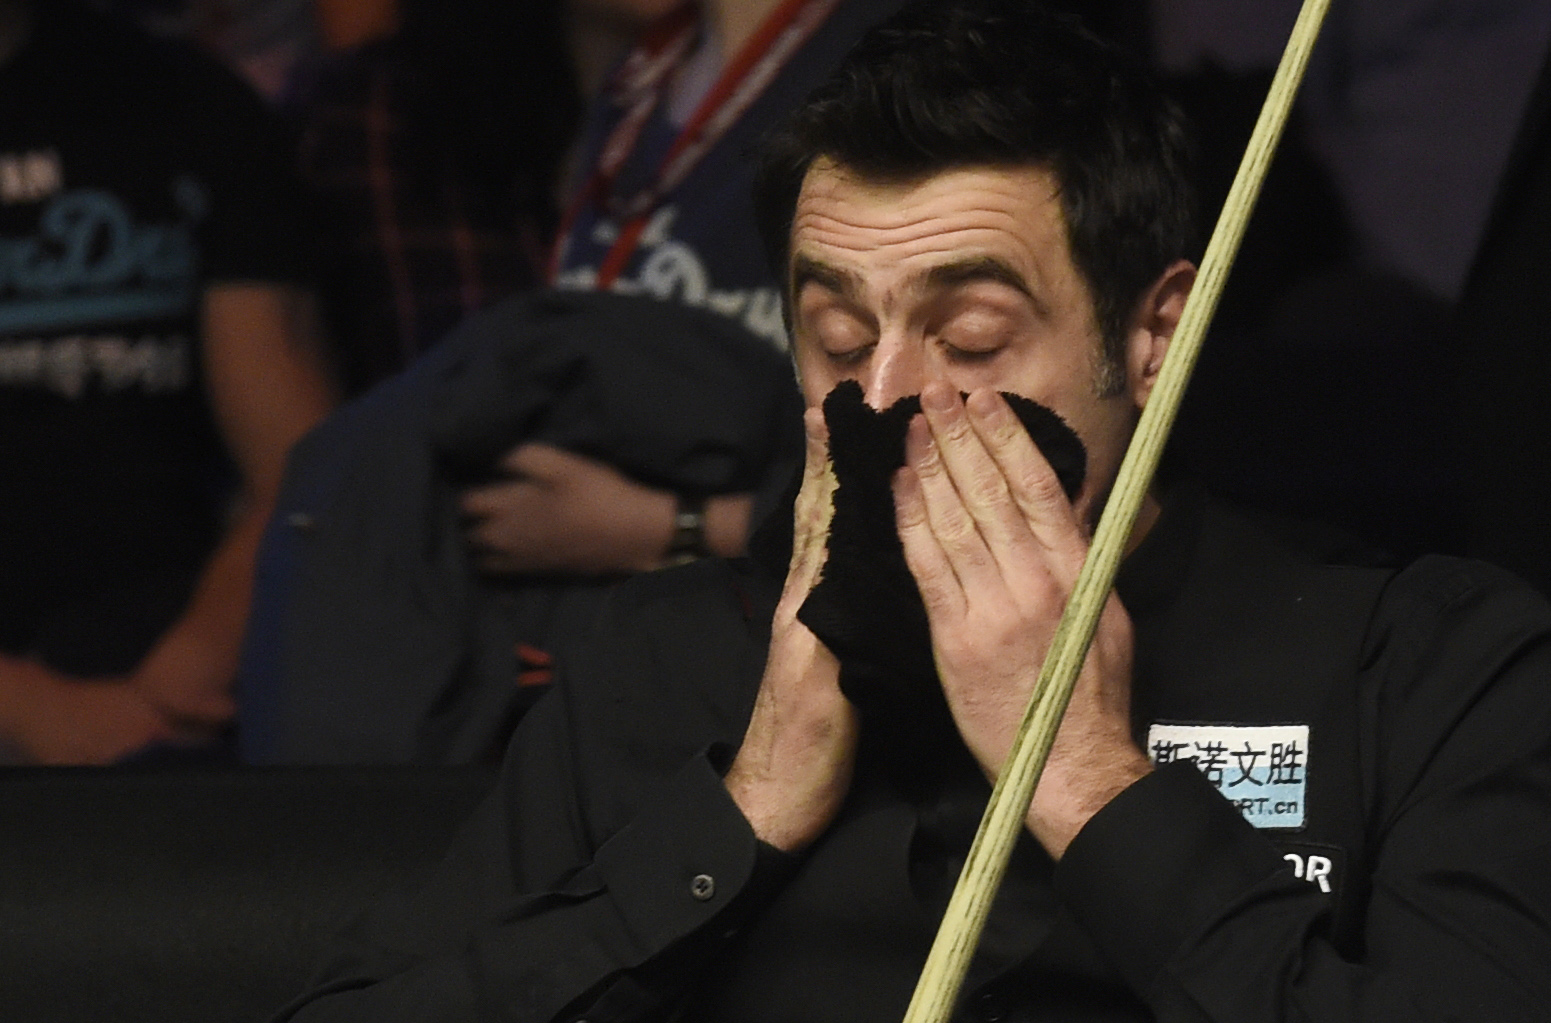 Ronnie O'Sullivan was thumped 5-1 by John Higgins in the quarter-finals. Picture: Action Images